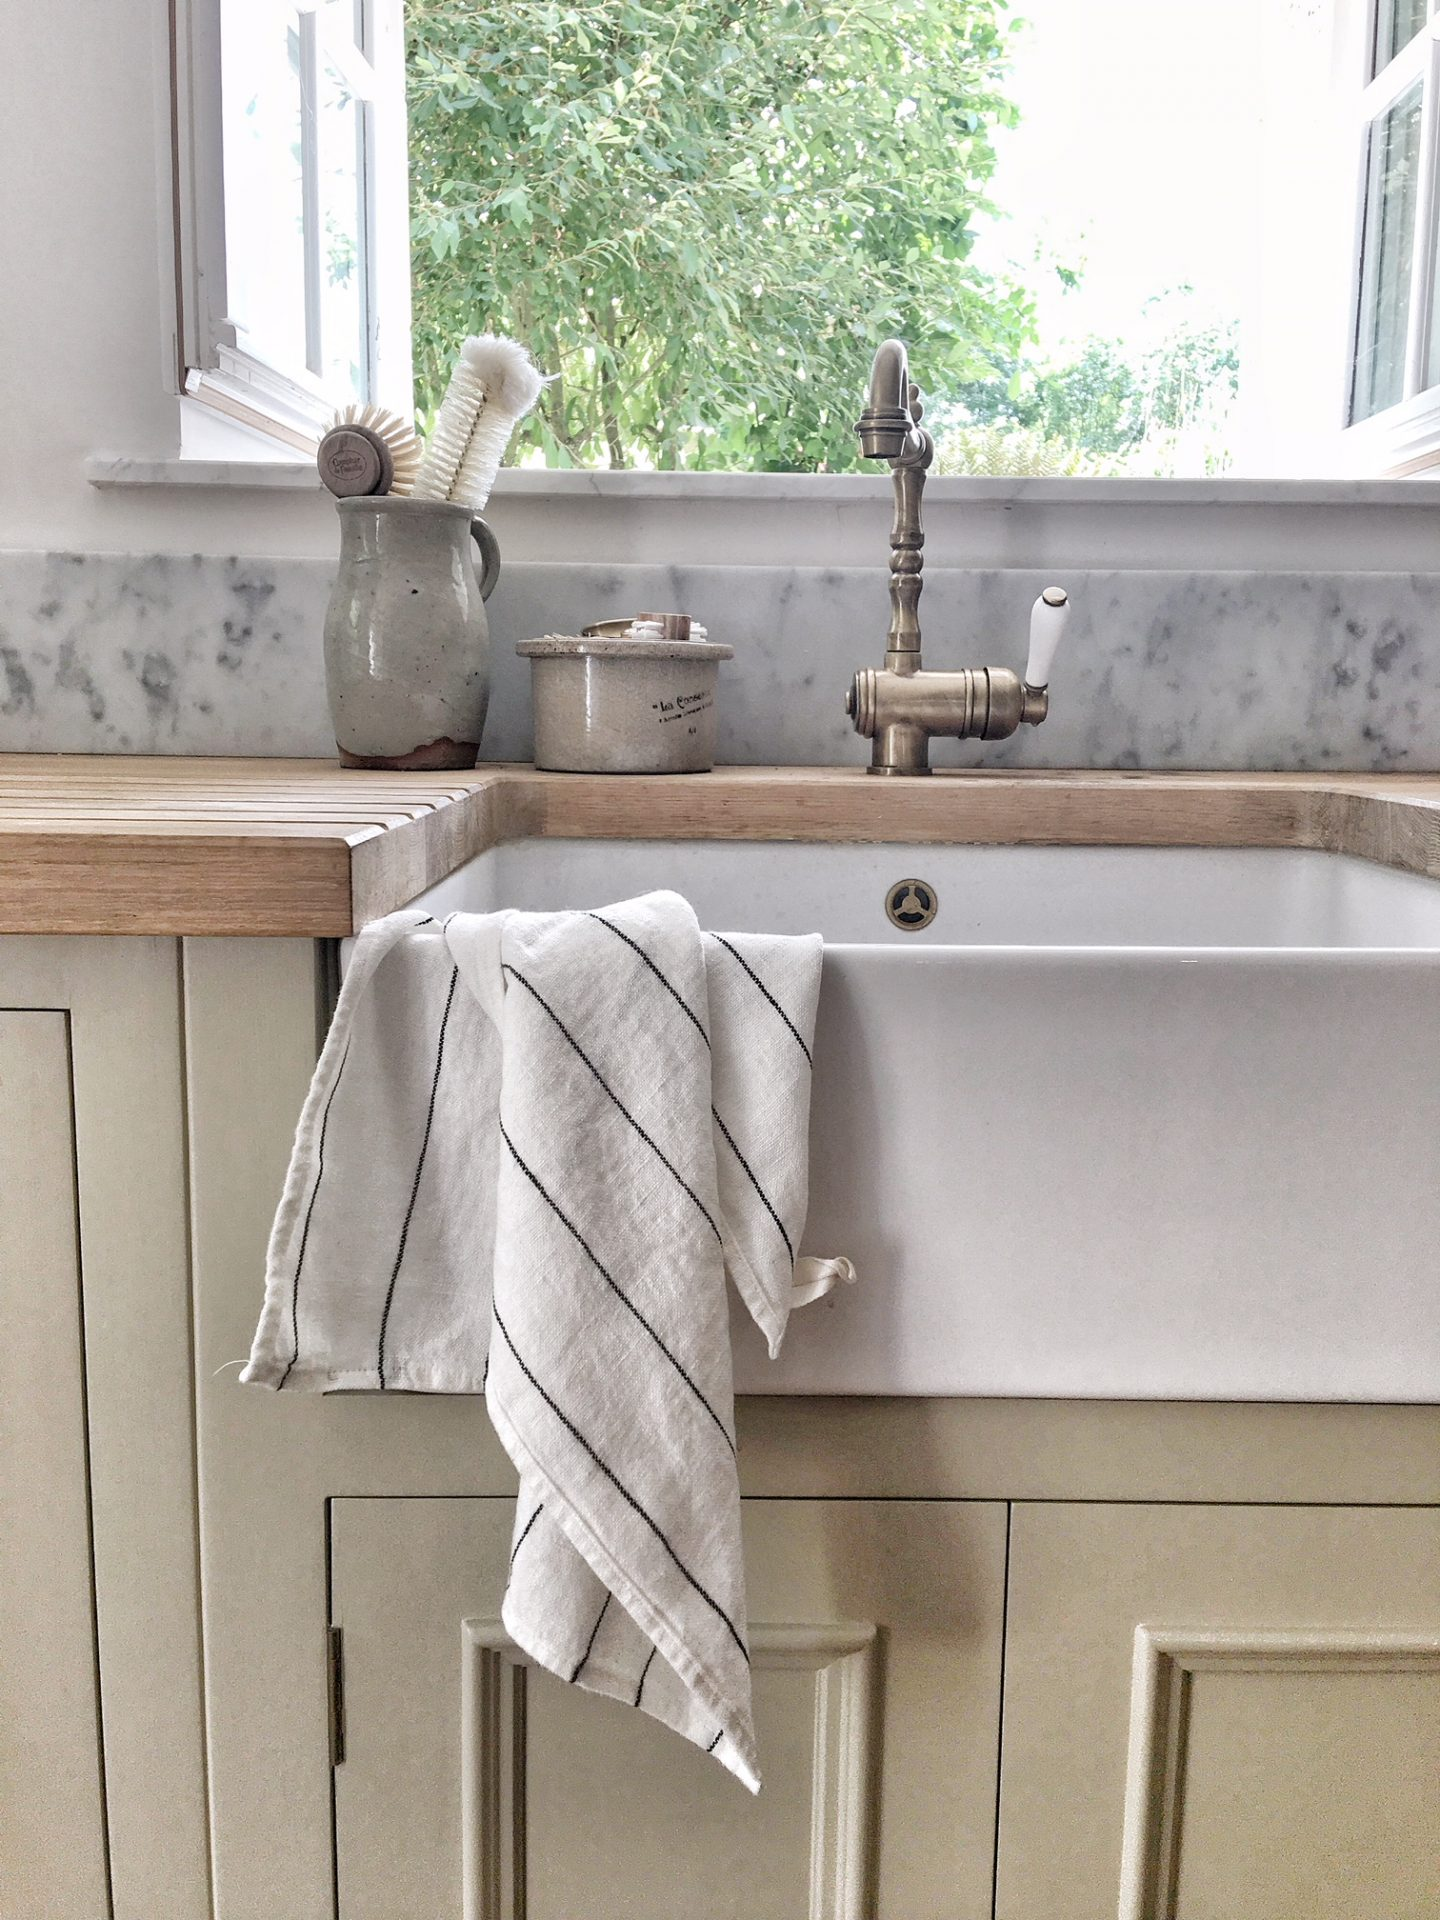 Detail of farm sink in French farmhouse kitchen. Vivi et Margot.